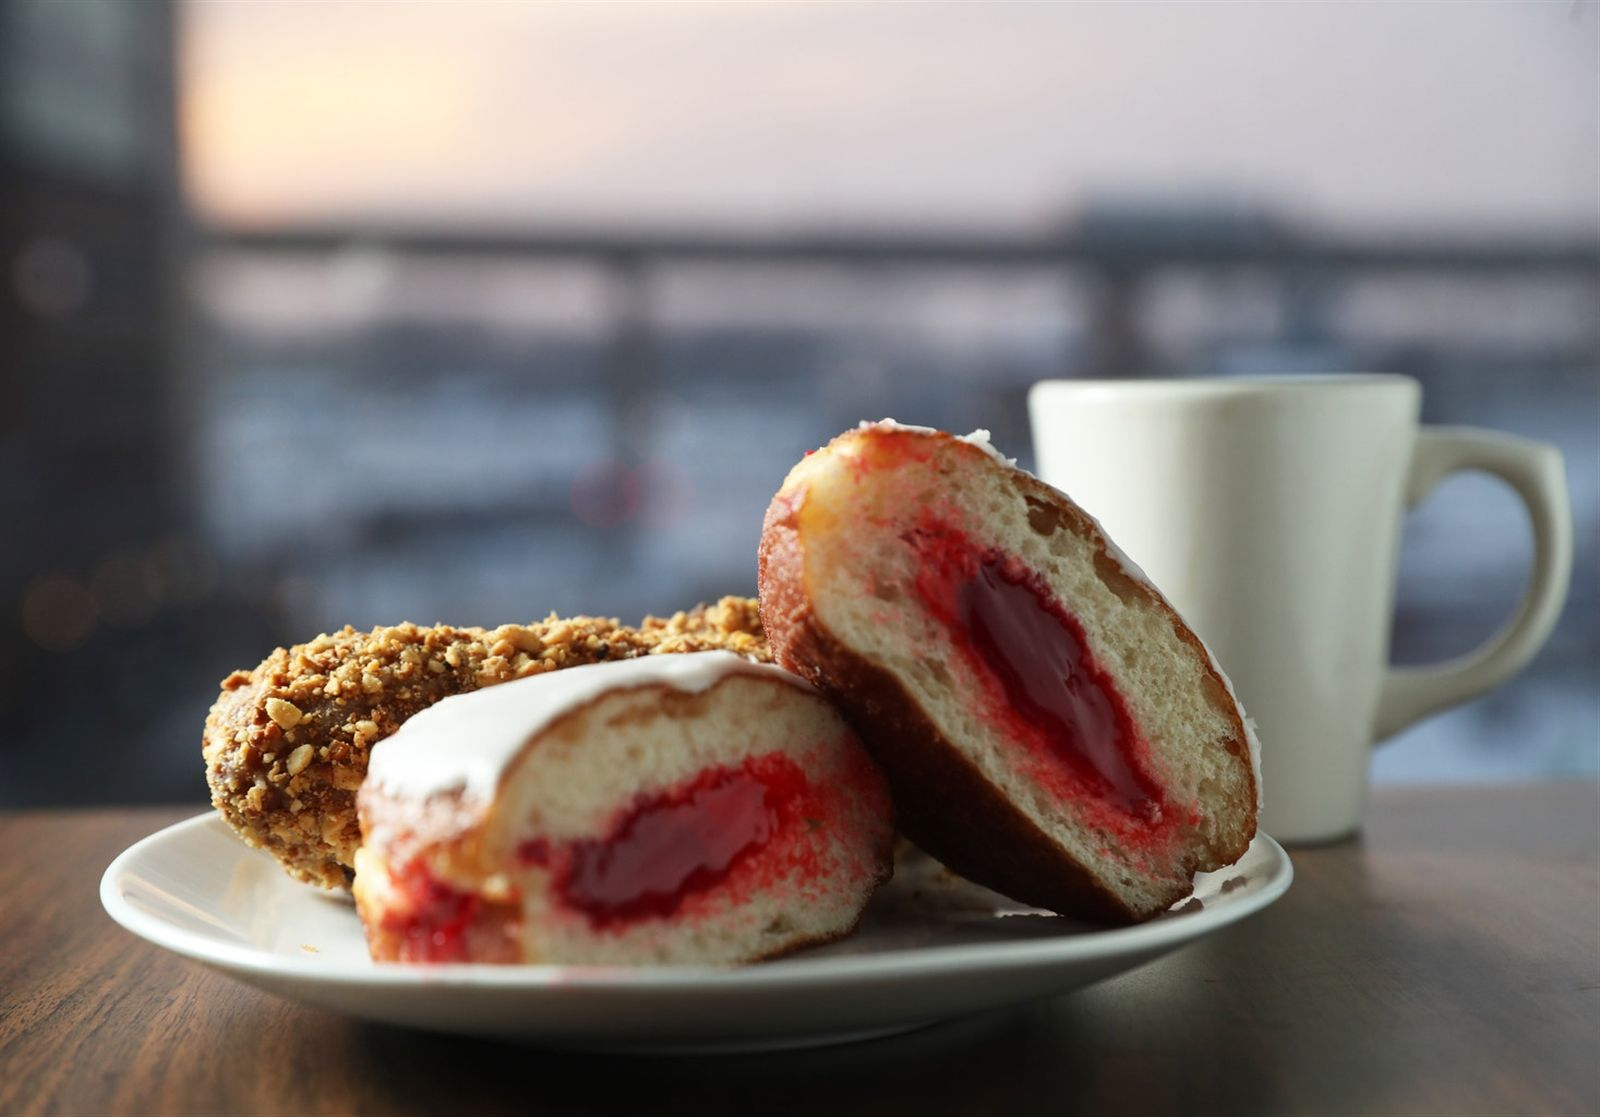 Western New Yorkers should revel in the work of their fellow citizens who rise before dawn daily to make these doughnut delicacies.